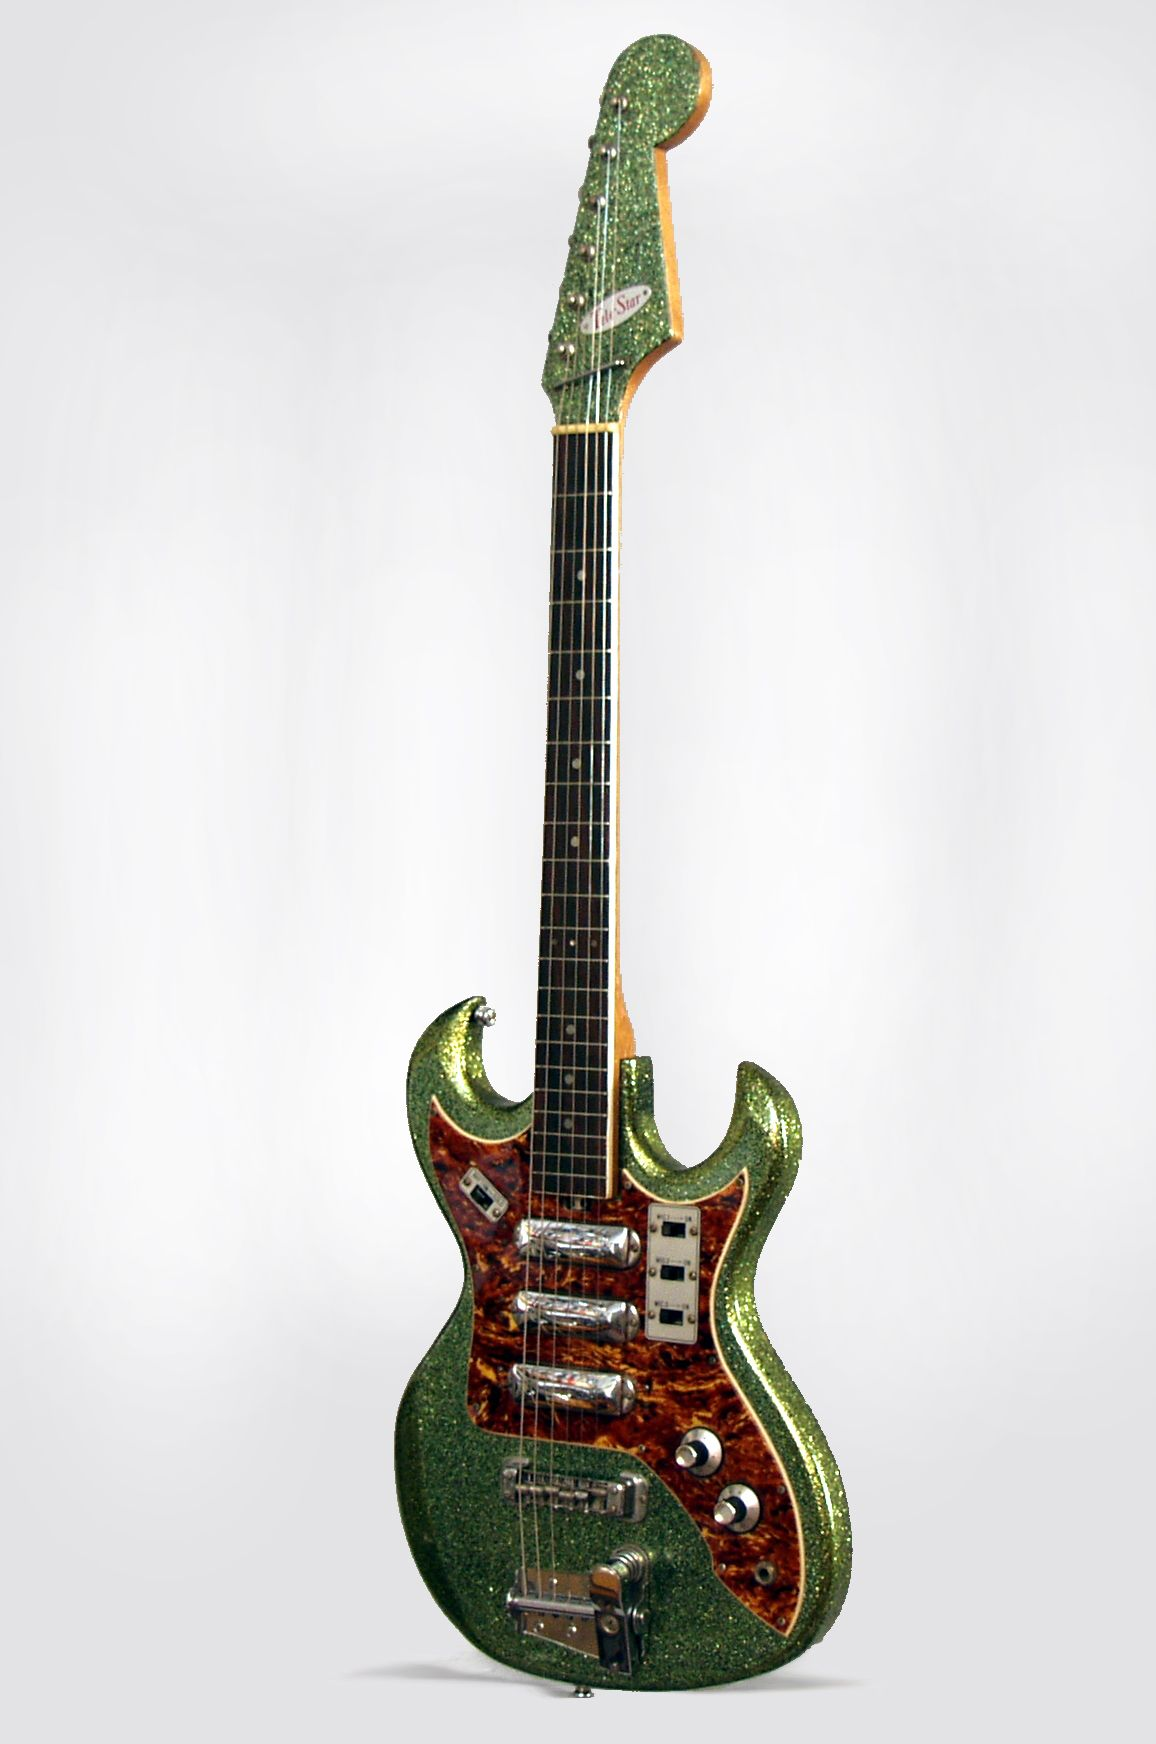 medium resolution of tele star model solid body electric guitar most likely made by teisco c 1964 made in japan green sparkle finish